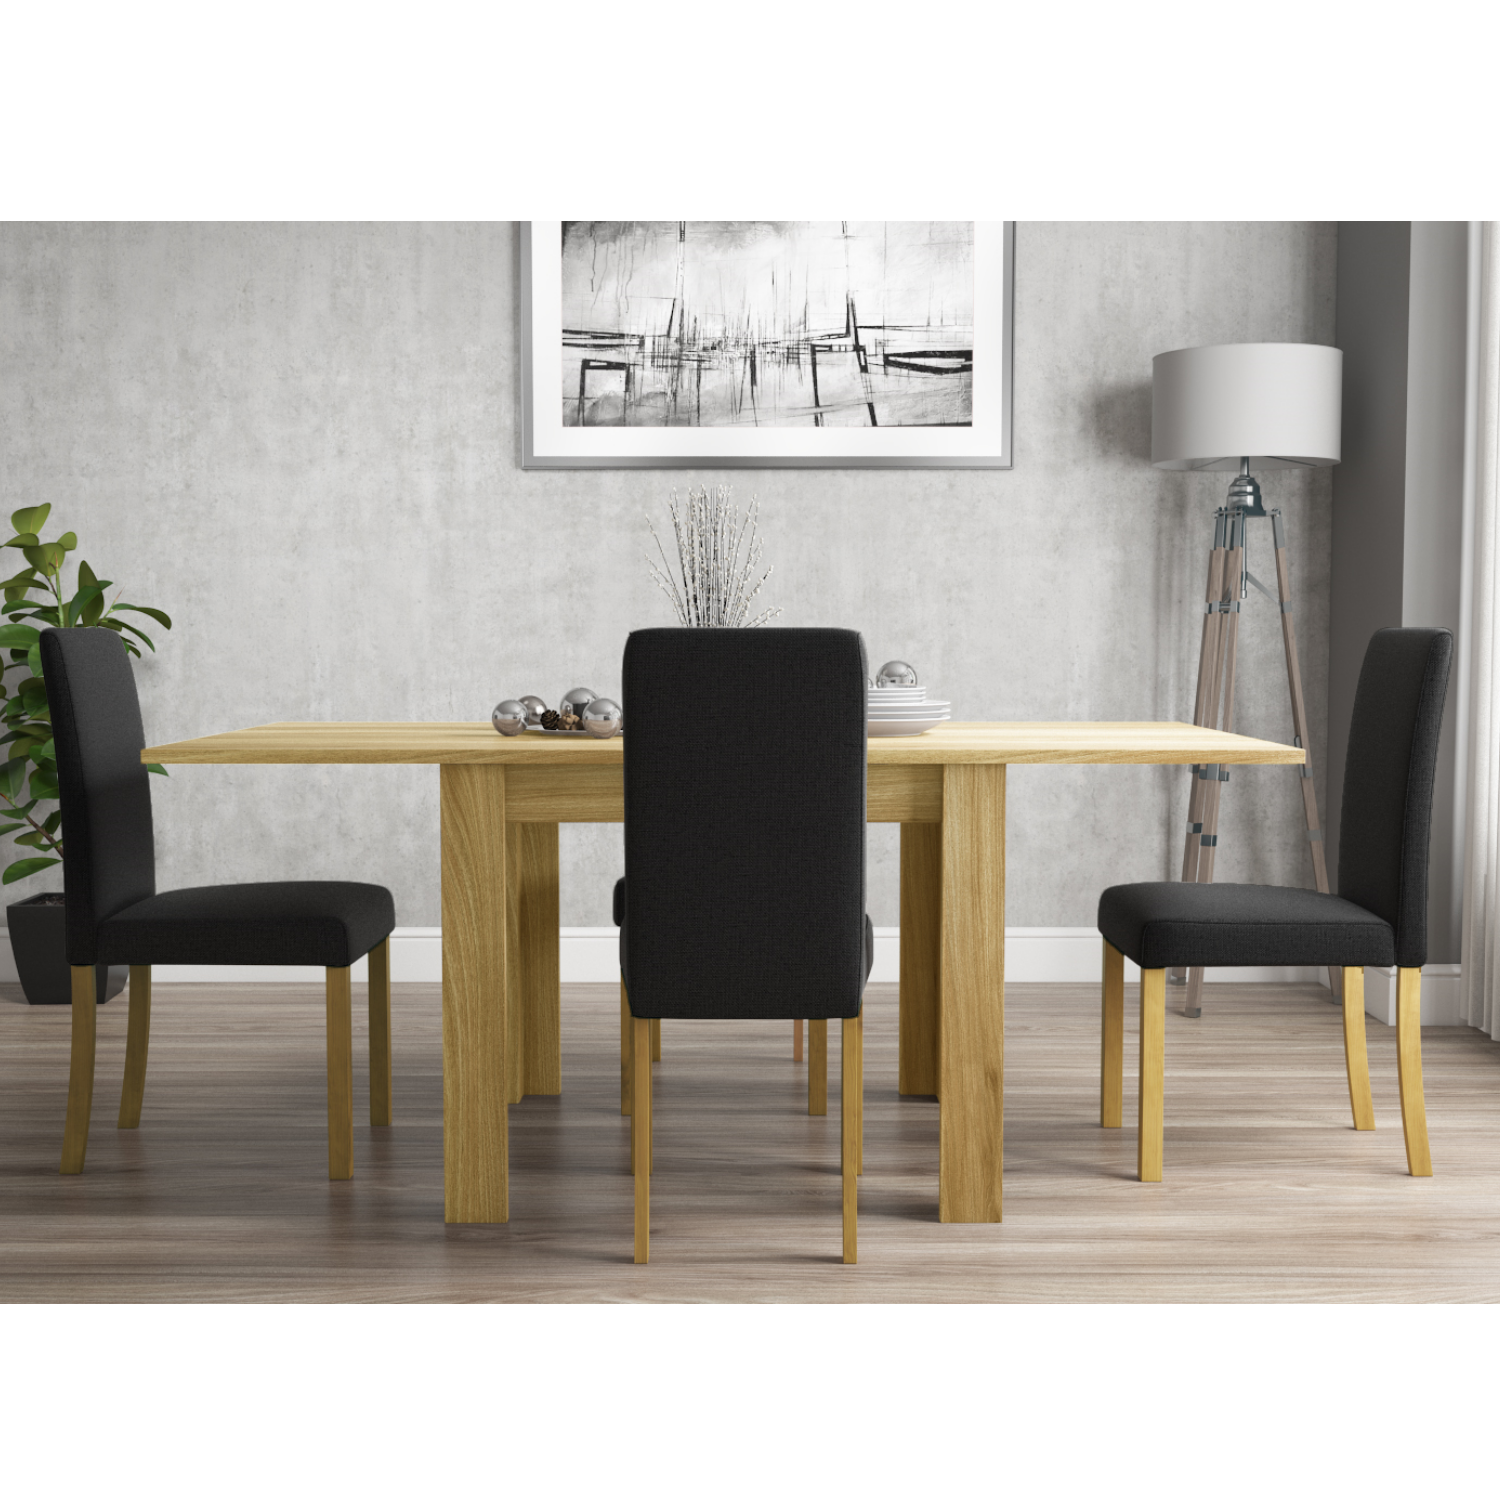 Picture of: New Town Flip Top Oak Effect Kitchen Dining Set With 4 Grey Fabric Chairs Ebay